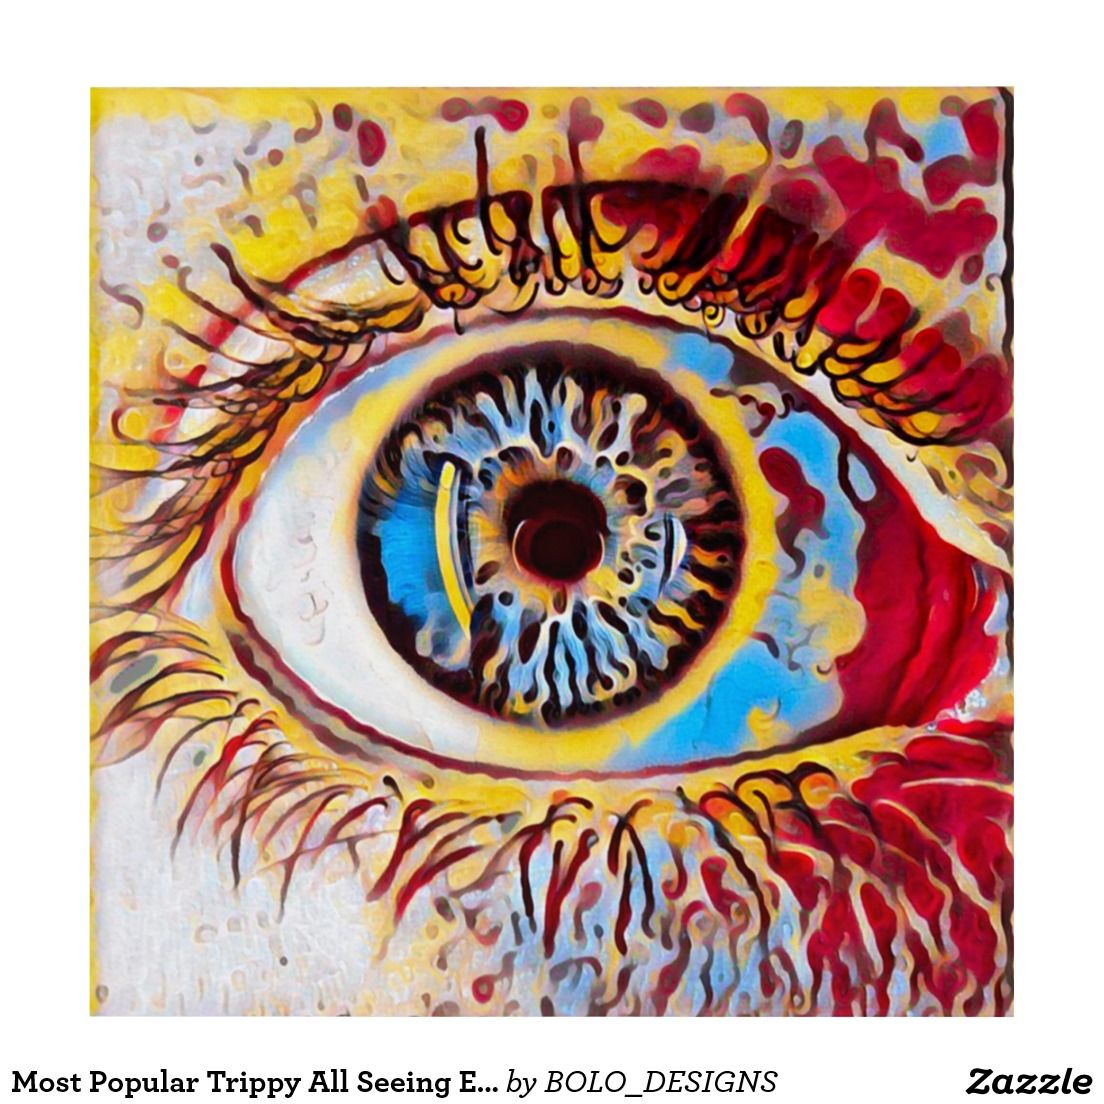 Most Popular Trippy All Seeing Eye Oil Paint Art | Zazzle ...